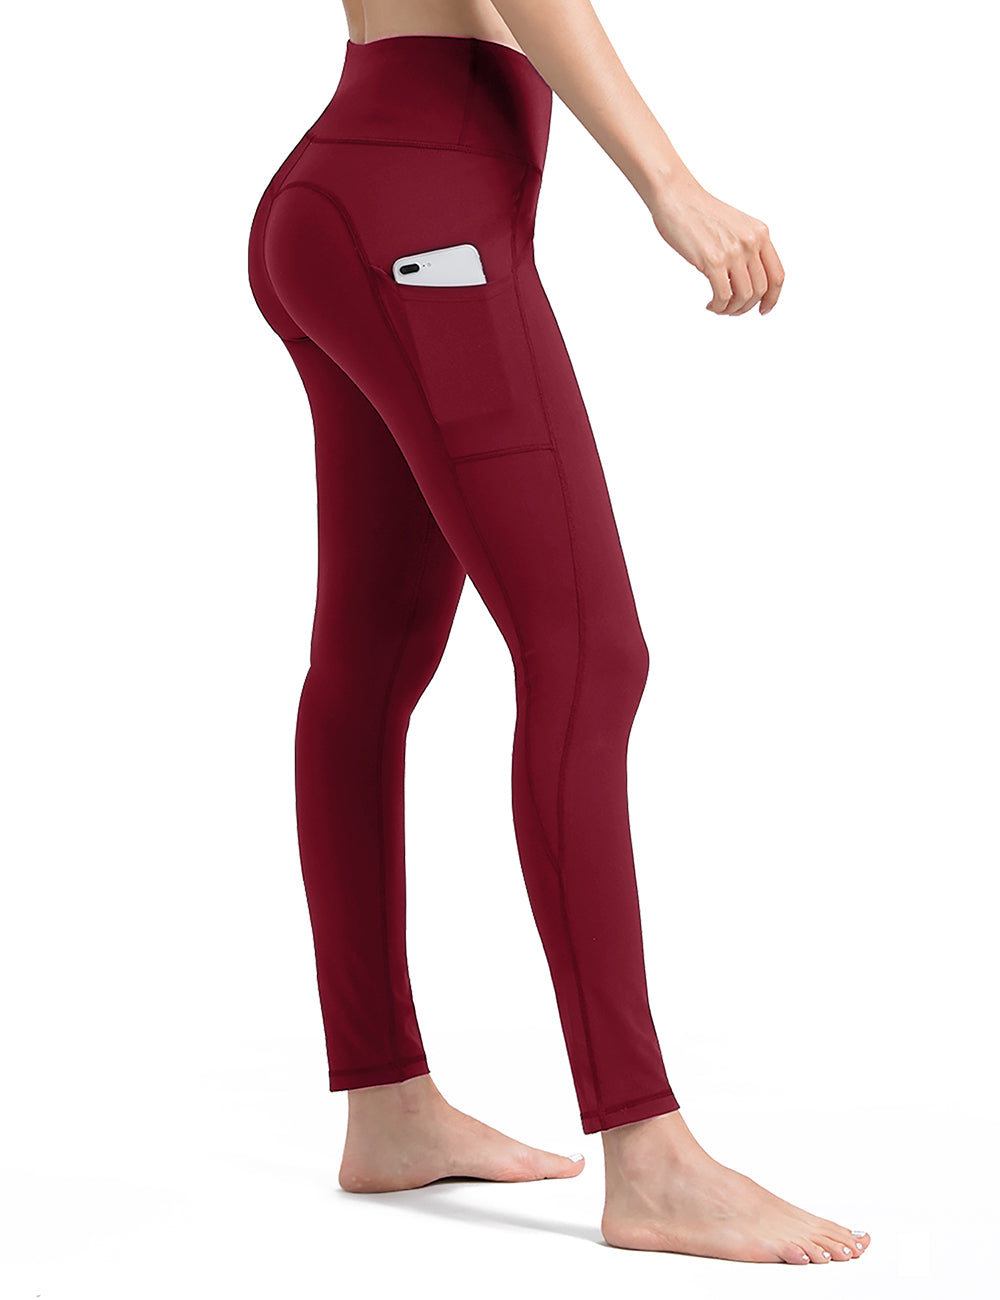 Red yoga pants with pockets - ALONGFIT